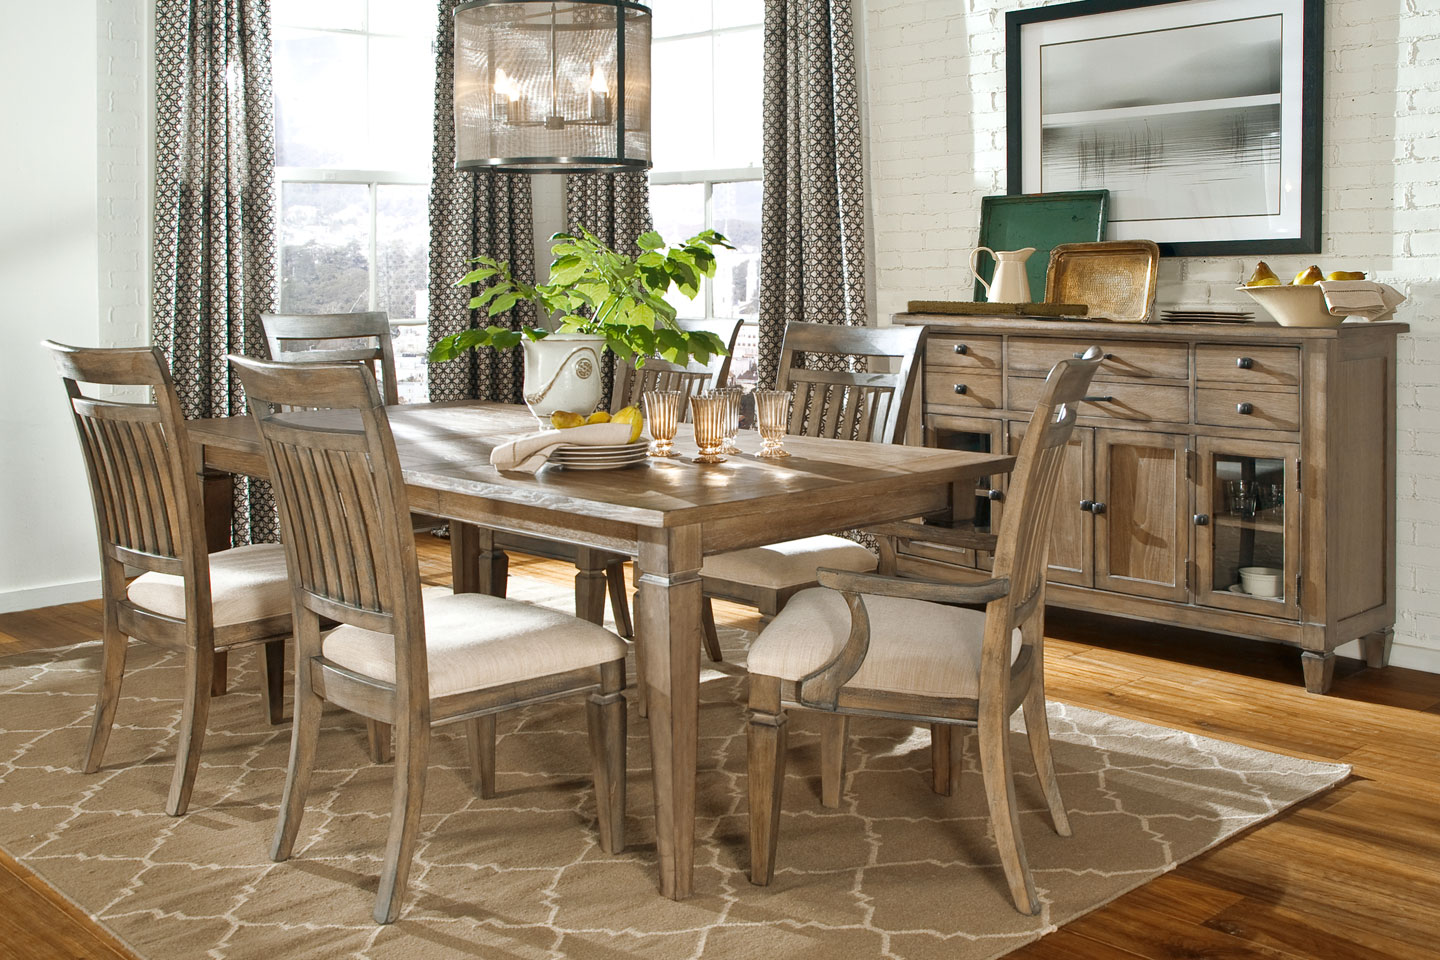 gavin rustic formal dining room set fine dining furniture ForBreakfast Room Furniture